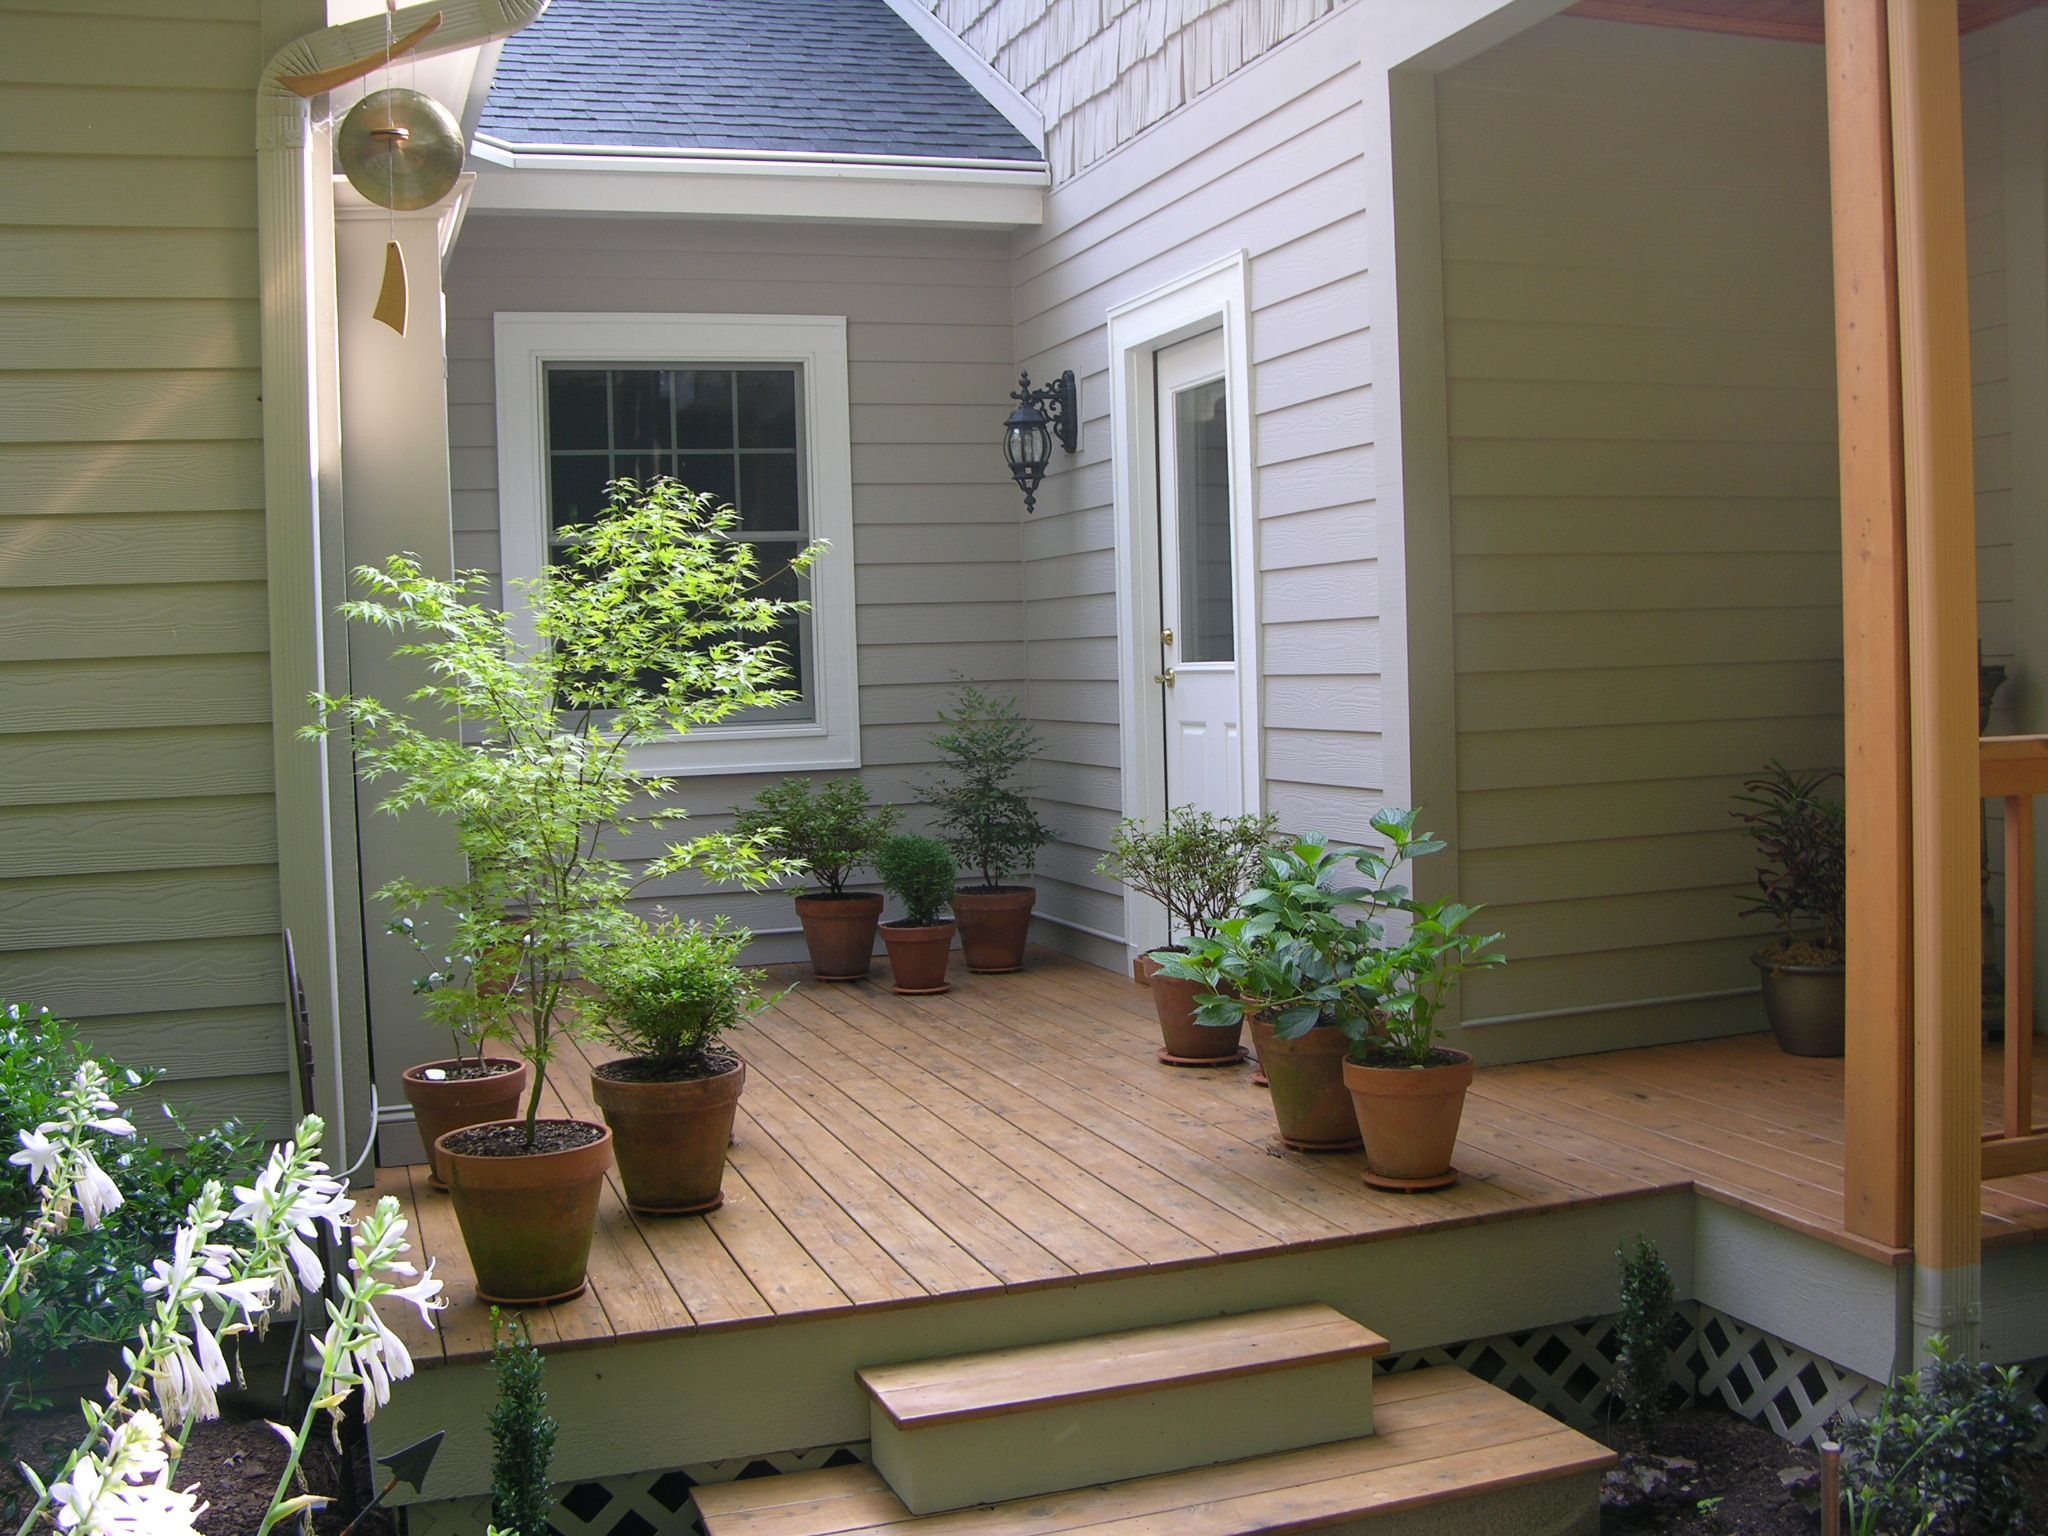 A Small Deck Off The Kitchen Notice That The Downspout On The Right